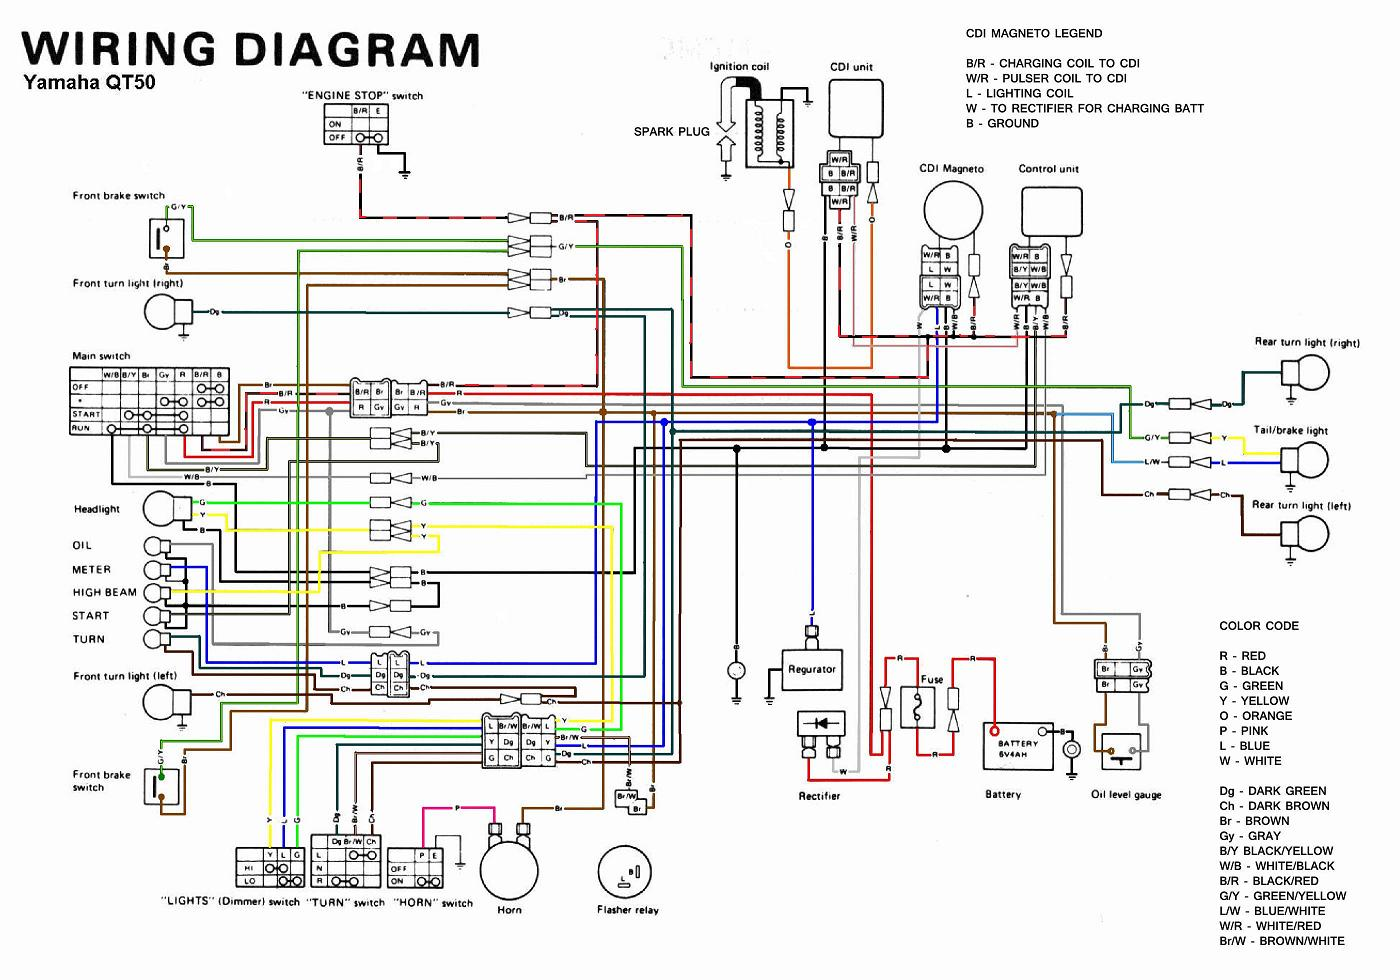 Honda Wiring Kit Library X8r Diagram Yamaha Qt50